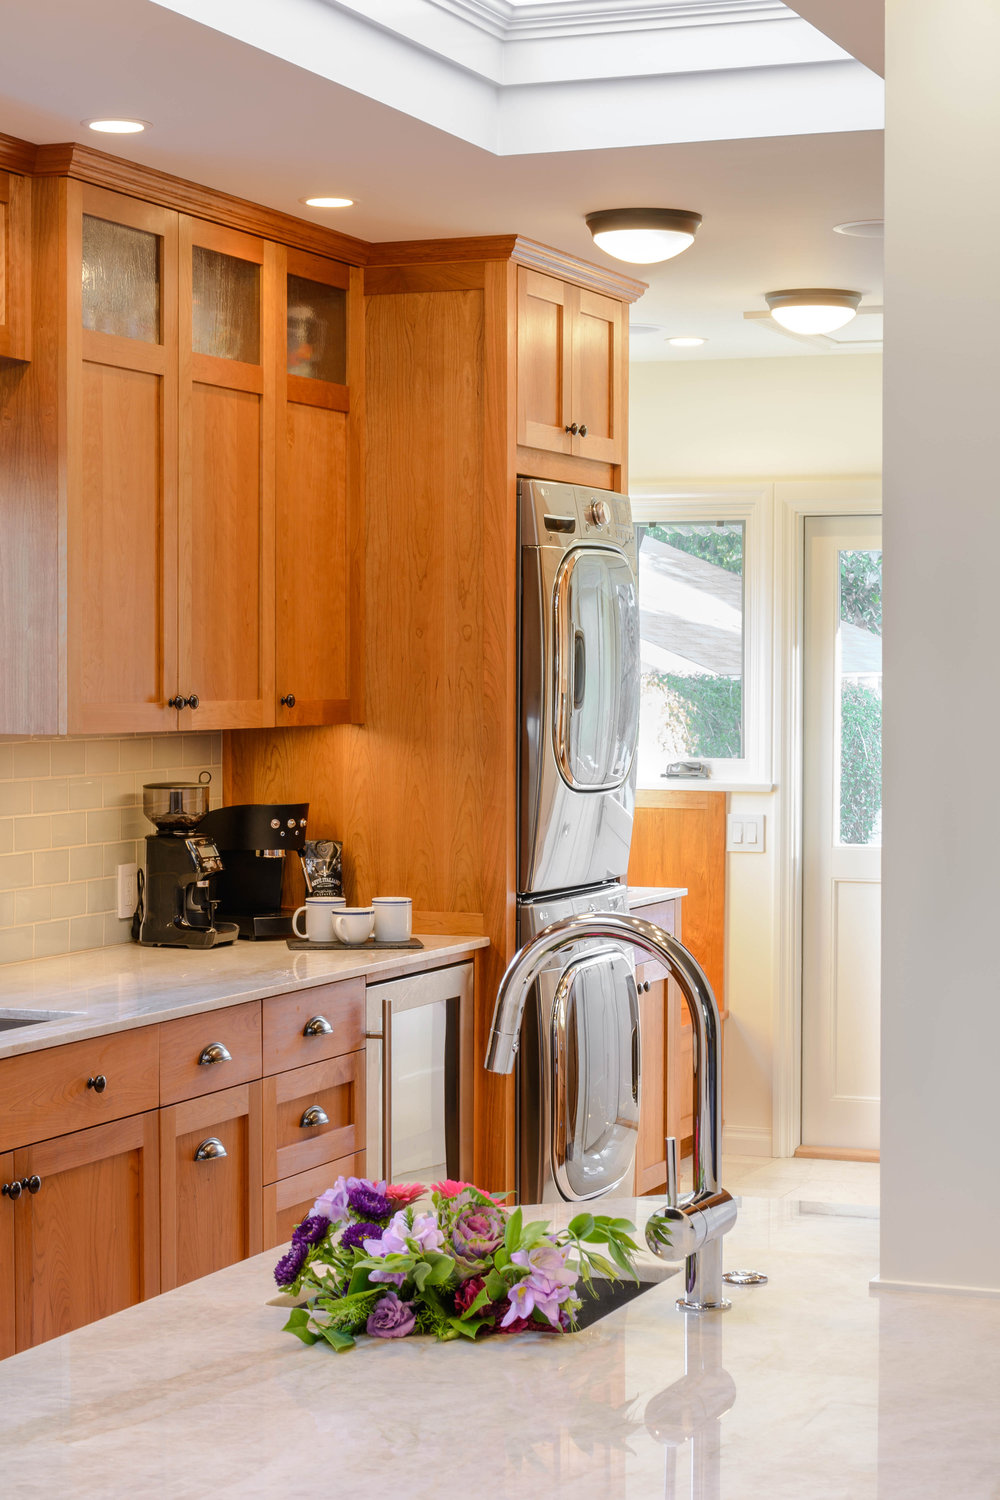 Bright Tudor style kitchen with mudroom, built-in washer and dryer, and peninsula with prep sink